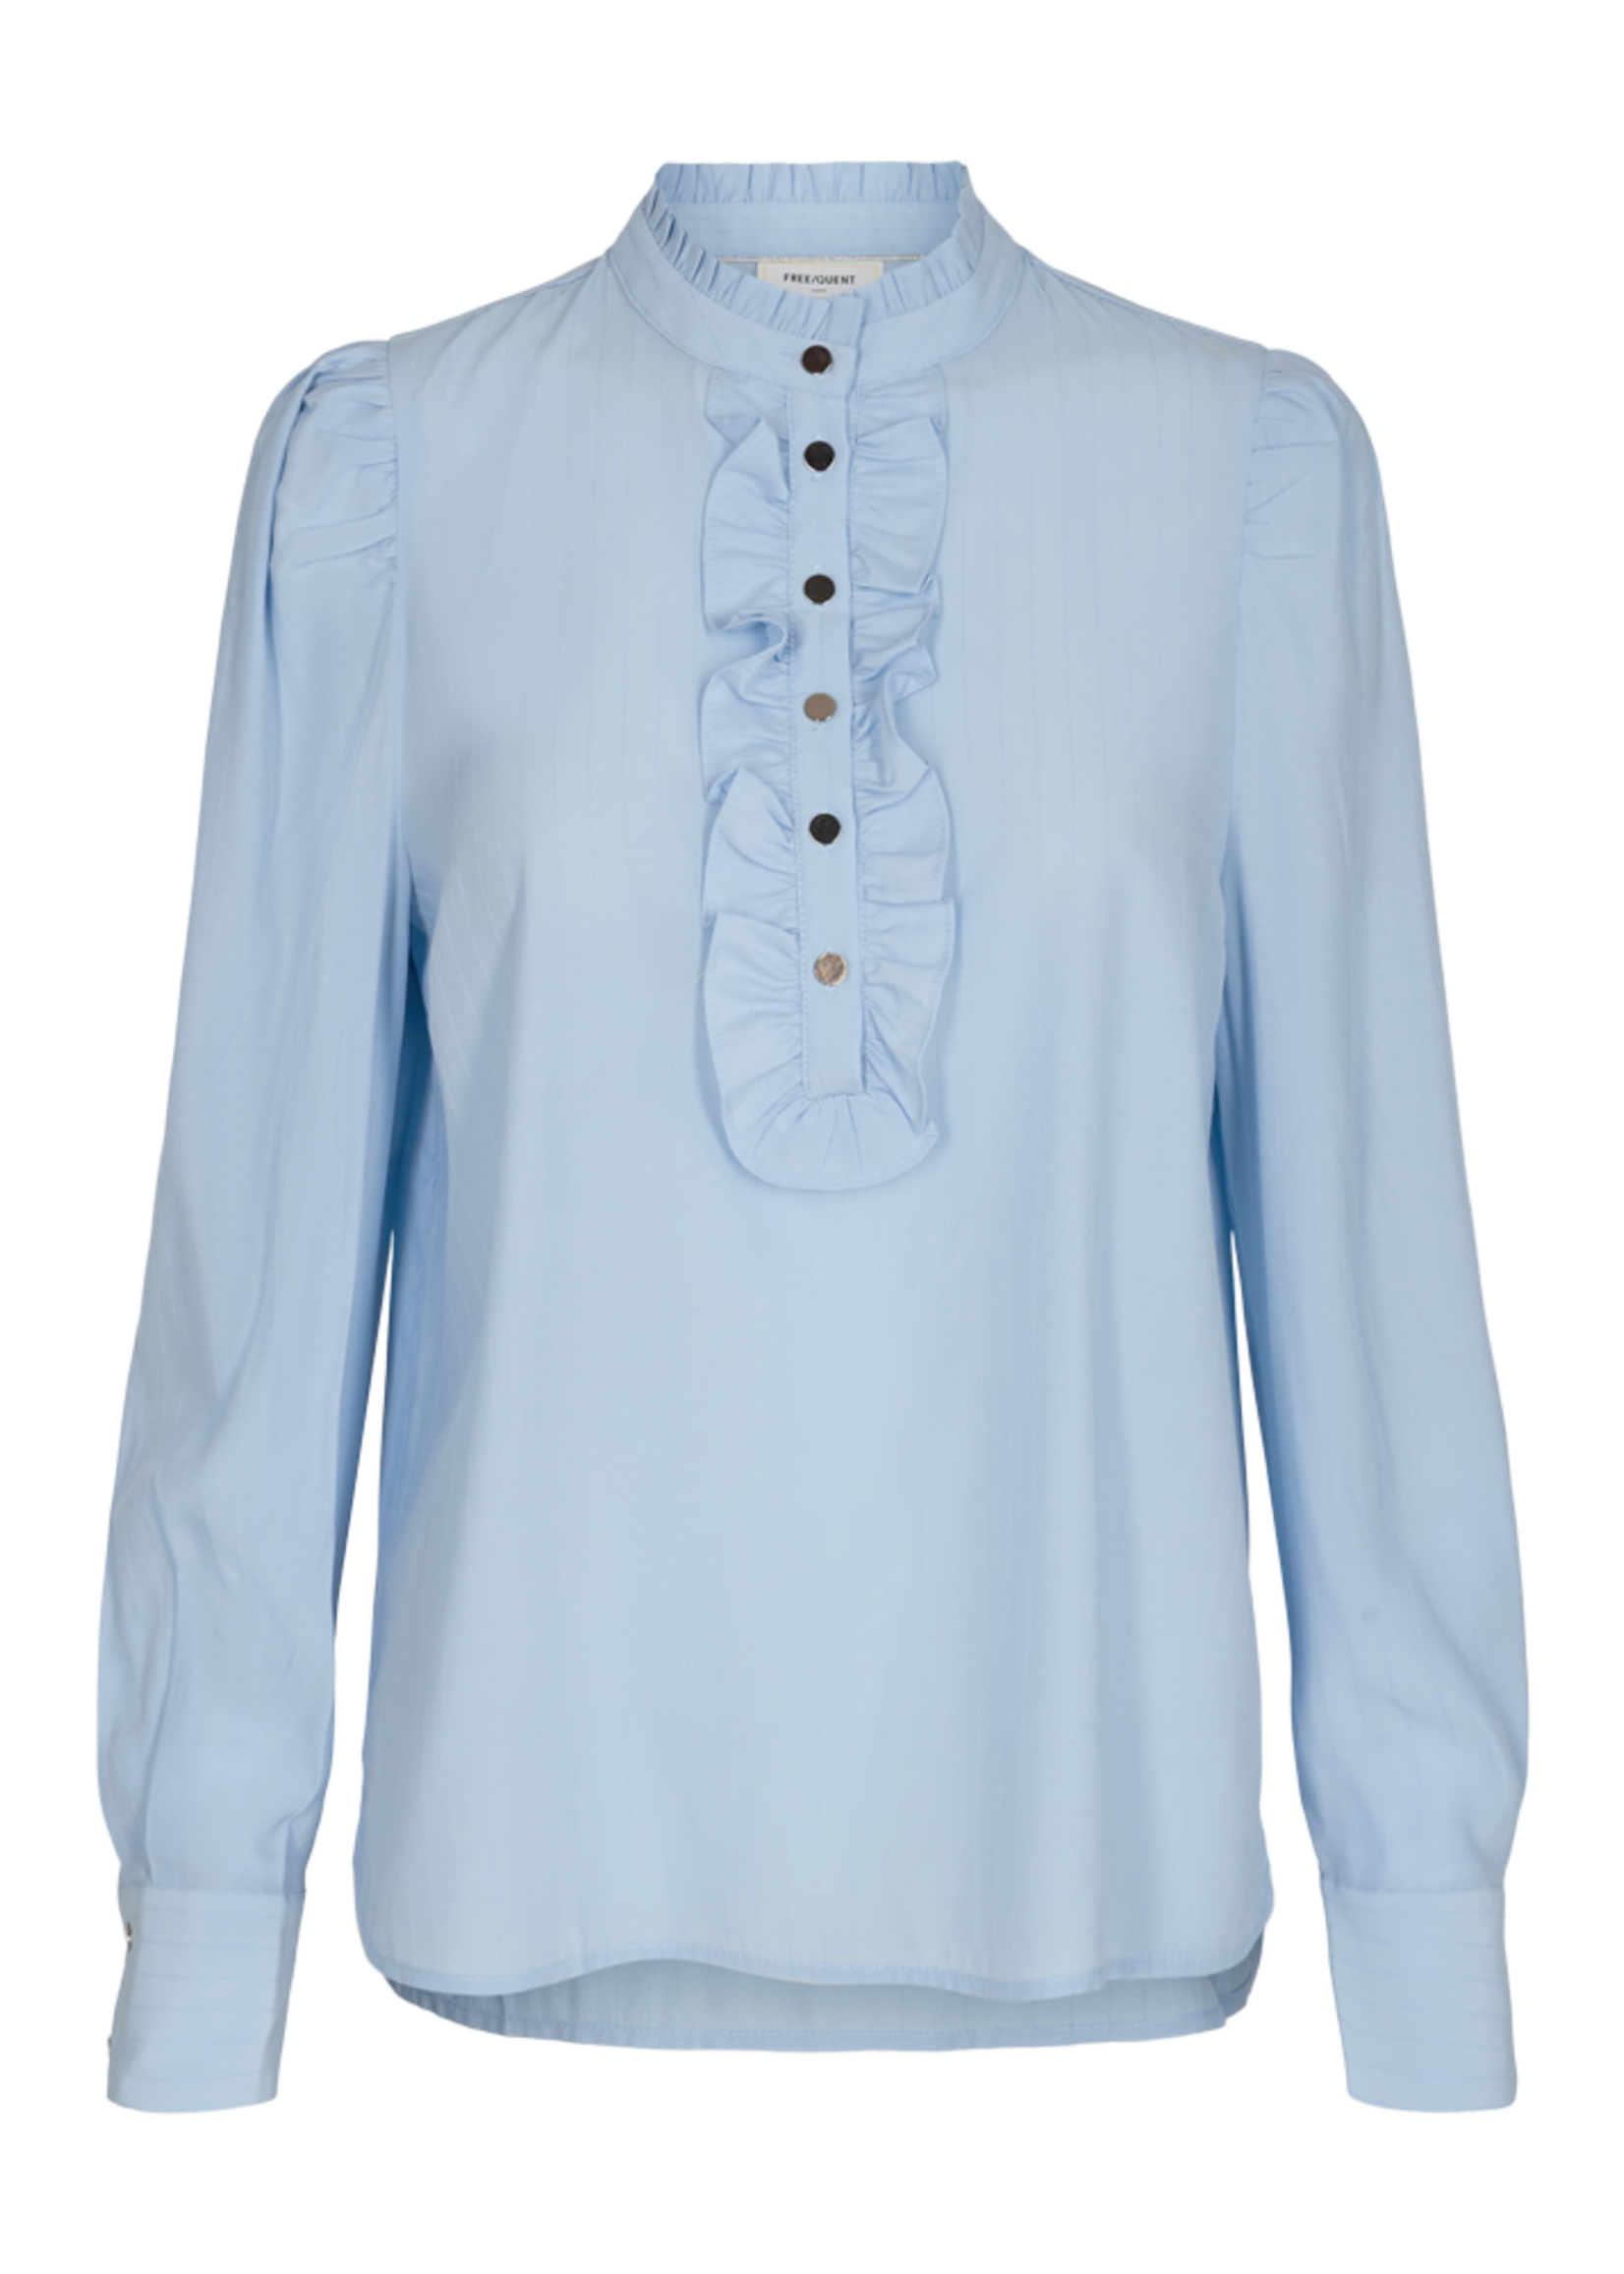 Free/Quent FREEQUENT Blouse met ruches